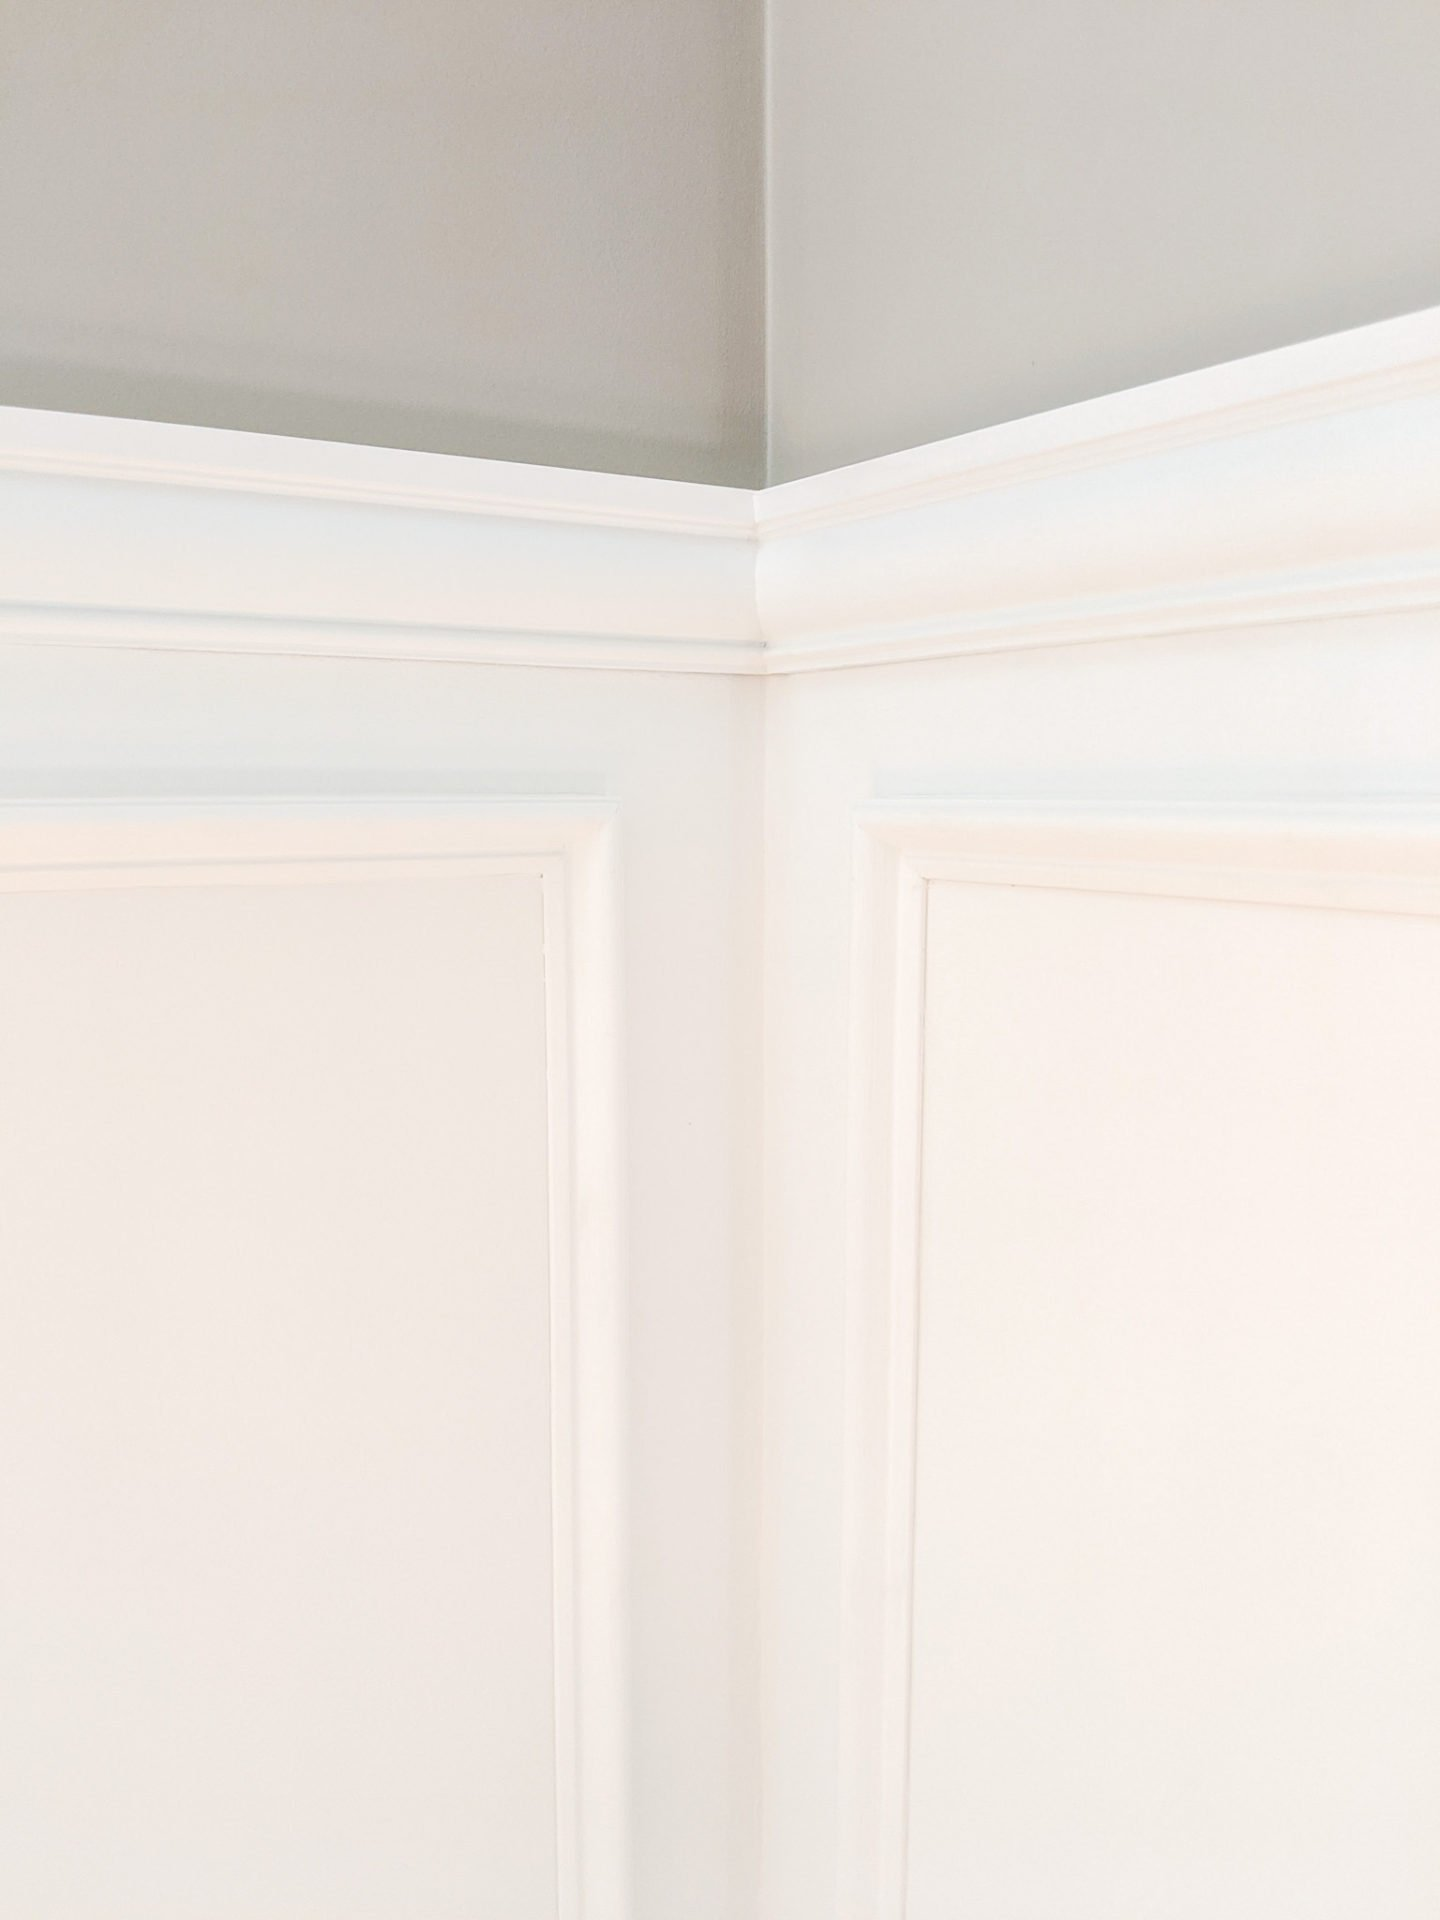 Wall molding and trim pieces.